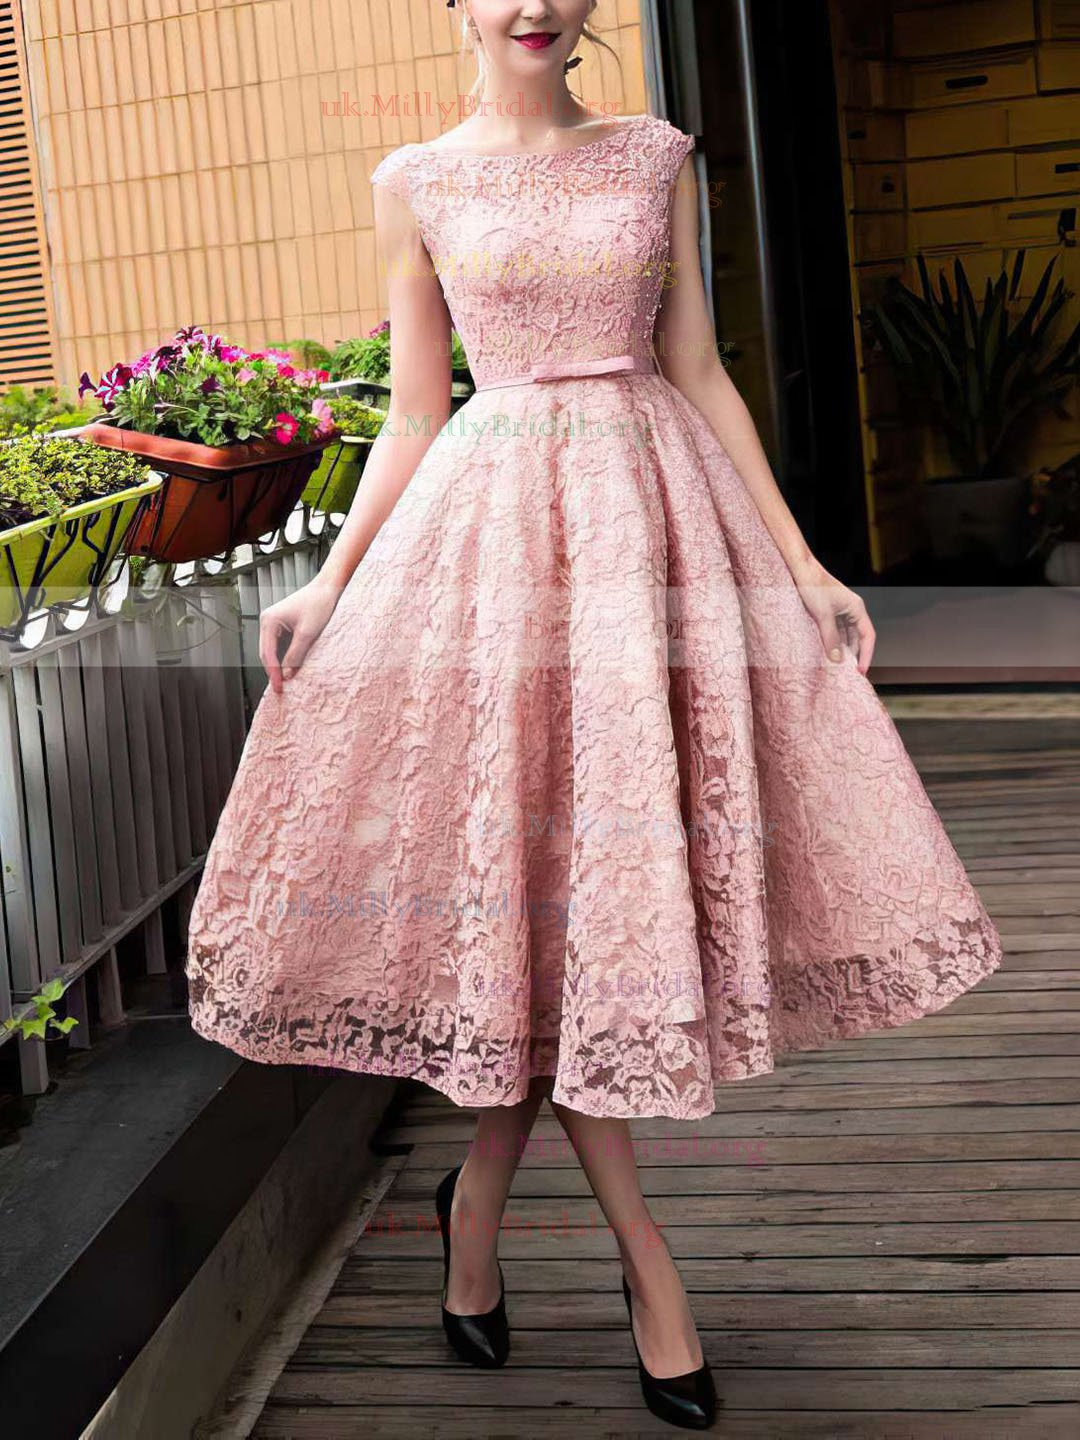 http://uk.millybridal.org/product/a-line-scoop-neck-lace-with-sashes-ribbons-tea-length-lace-up-sweet-prom-dresses-ukm020102877-18274.html